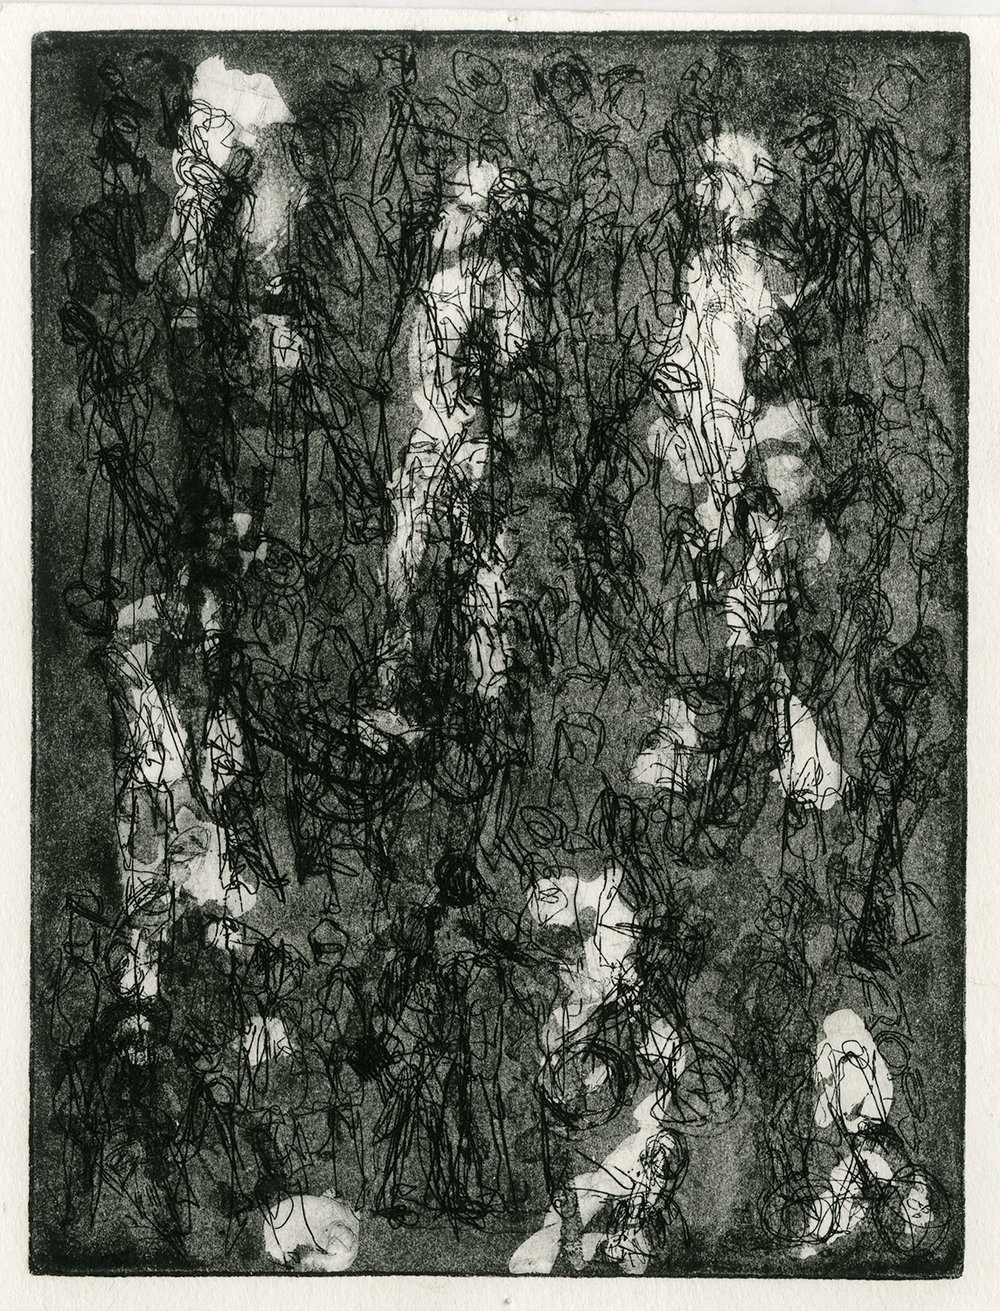 one plate  state IV, 2015, zinc etching on Hanhnemuhle, 20 x 15 cm